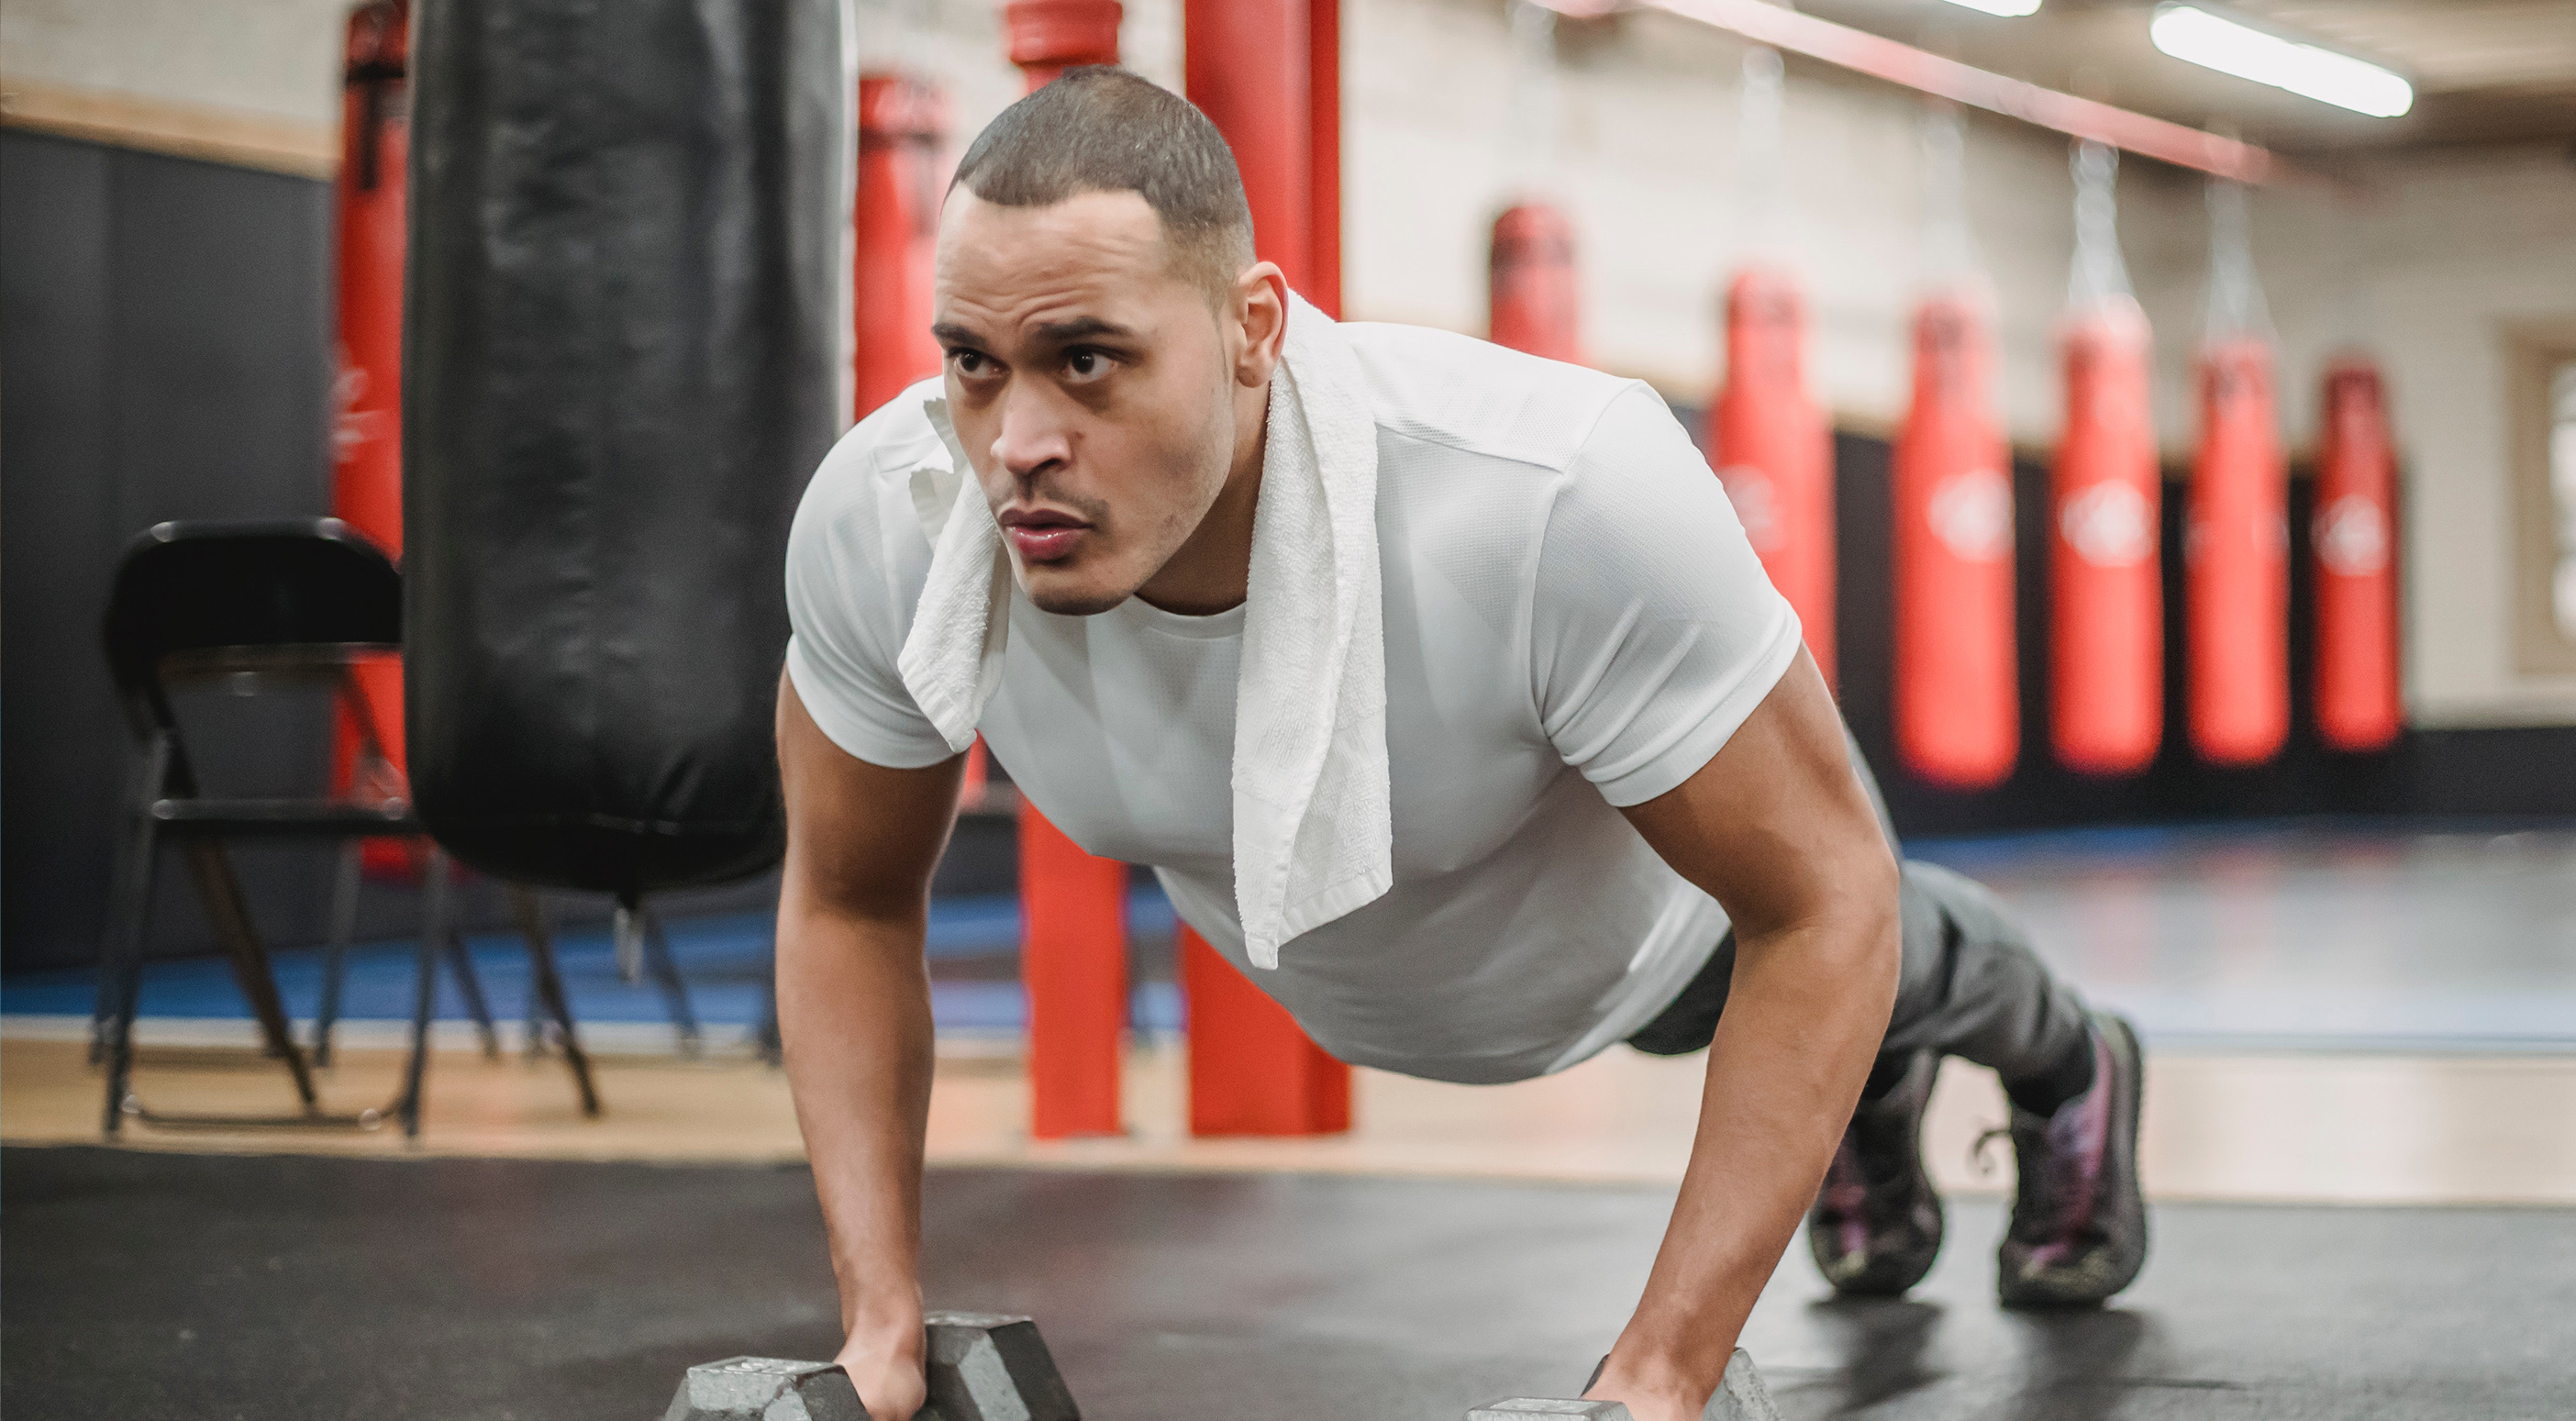 Man doing push ups in a gym